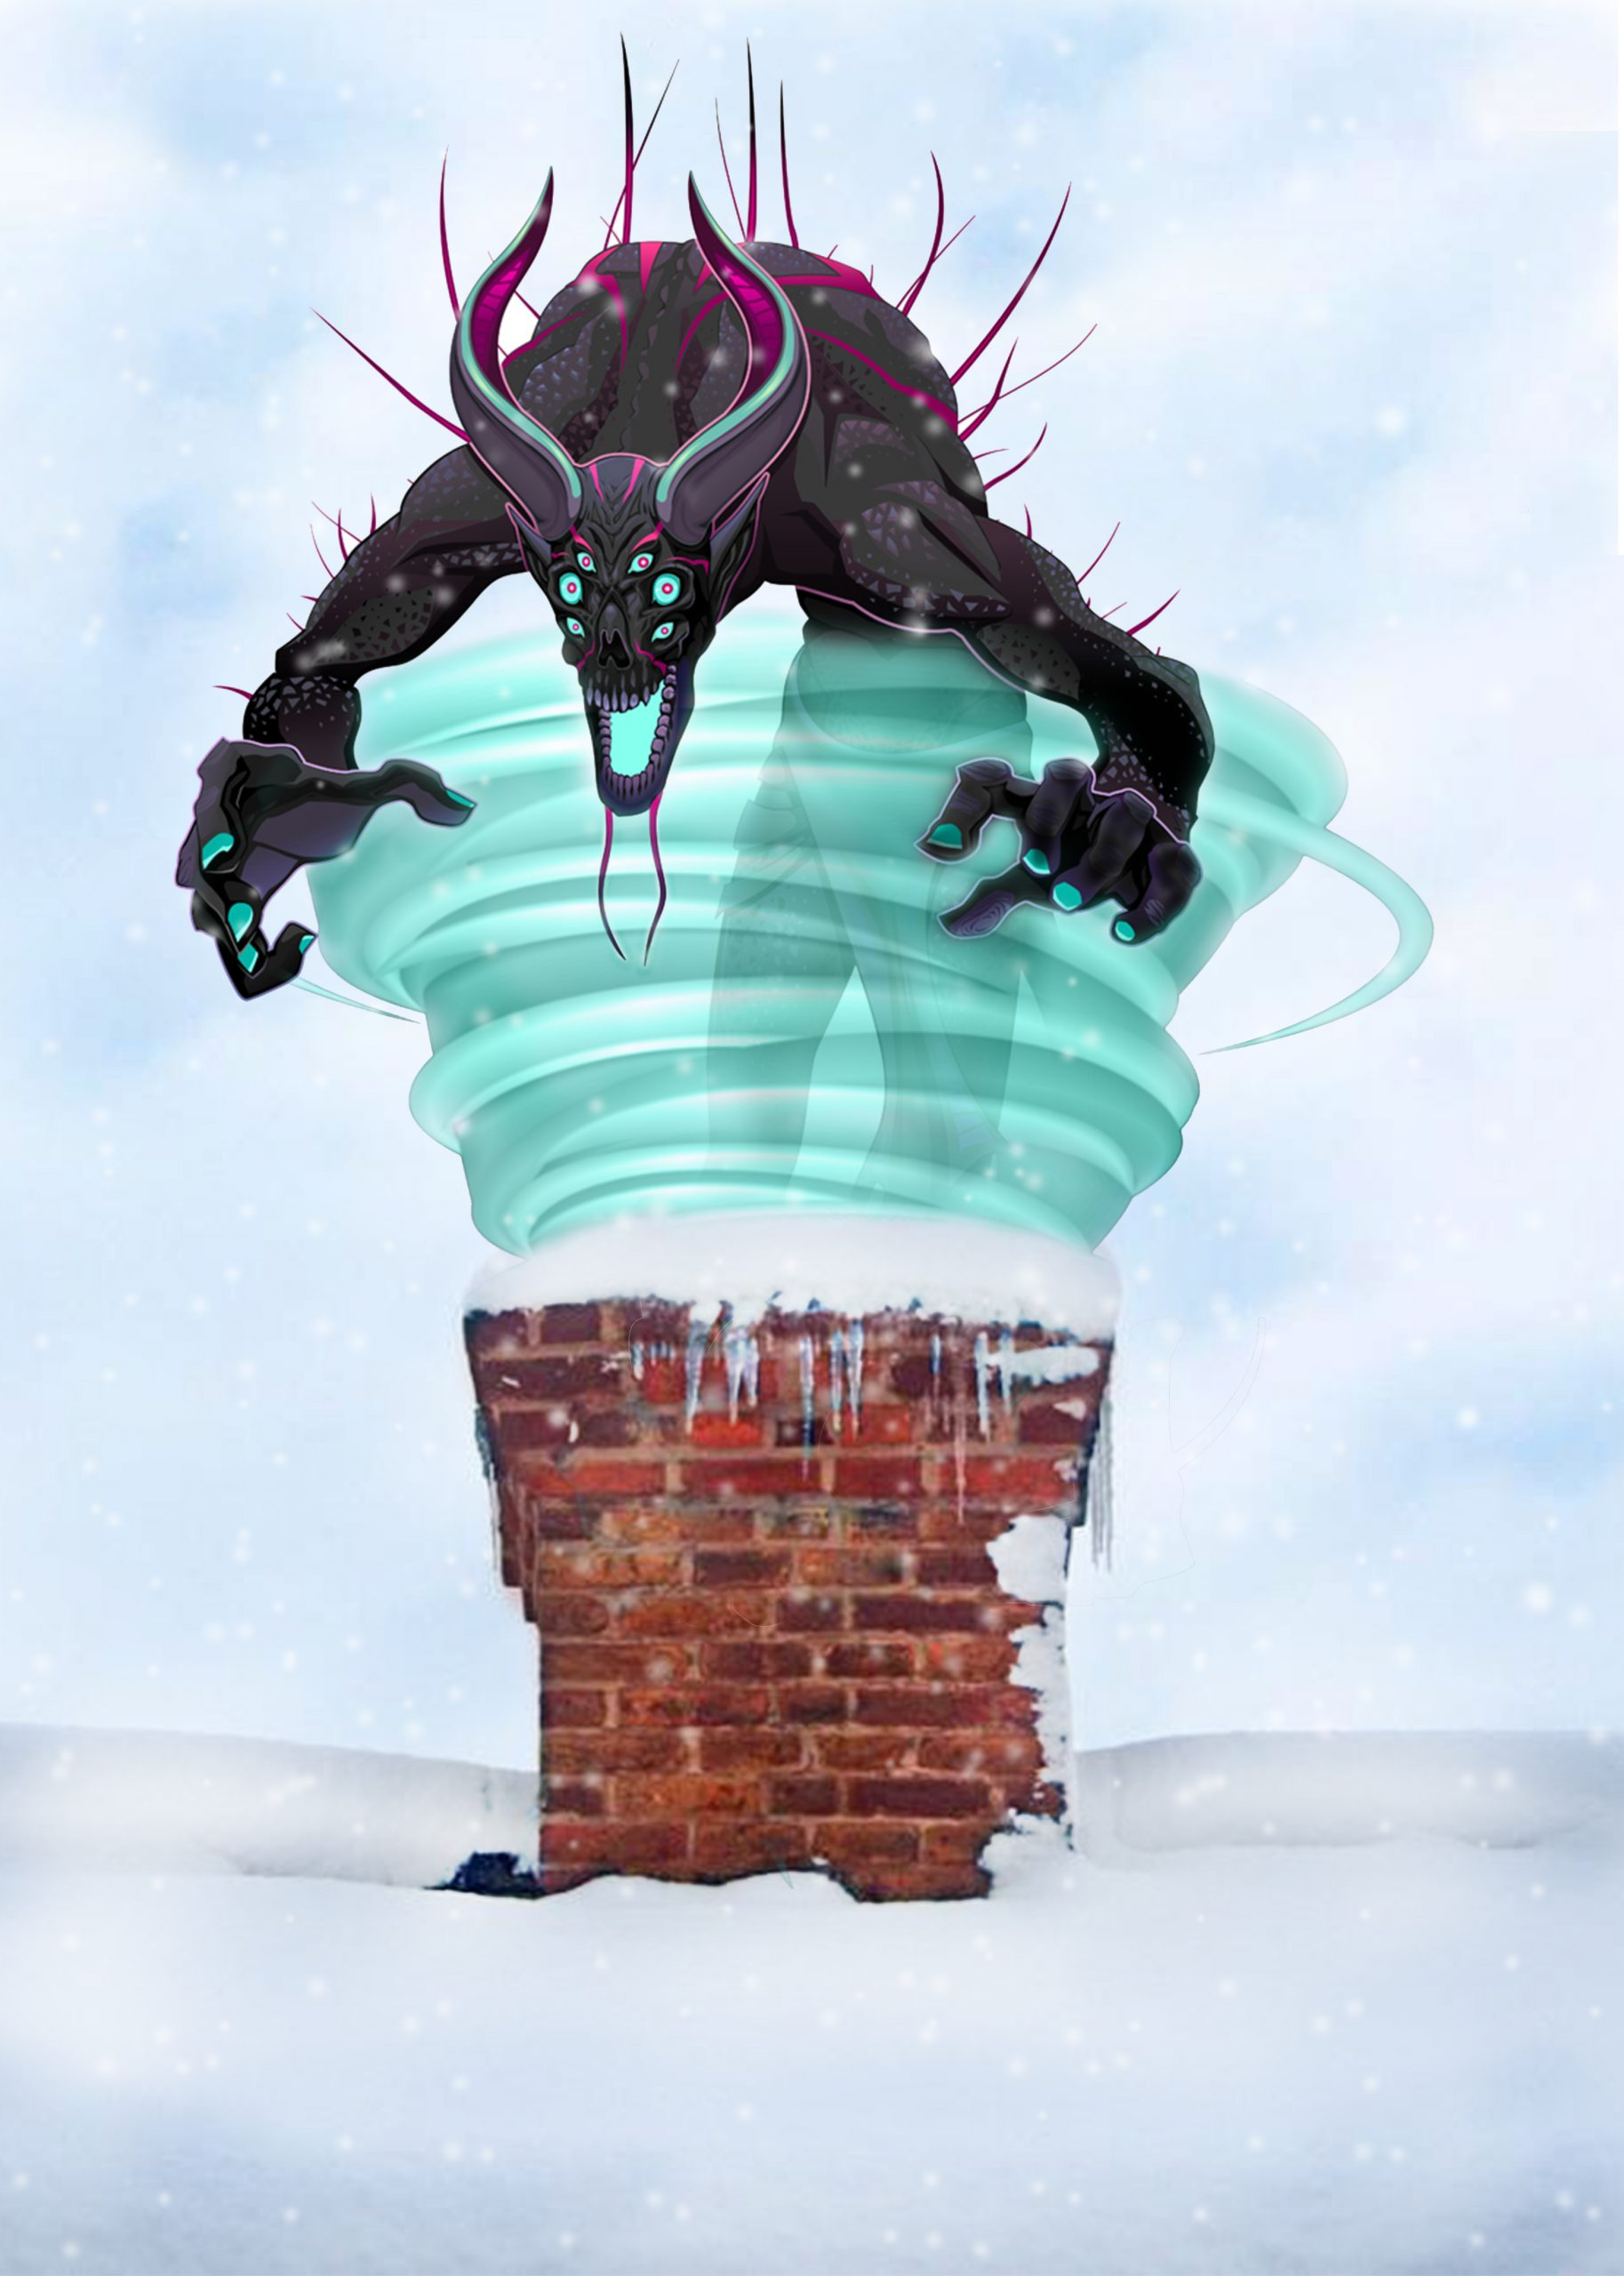 wind noise: a depiction of a whirling wind monster trying to get down the chimney but blocked out by a chimney sheep